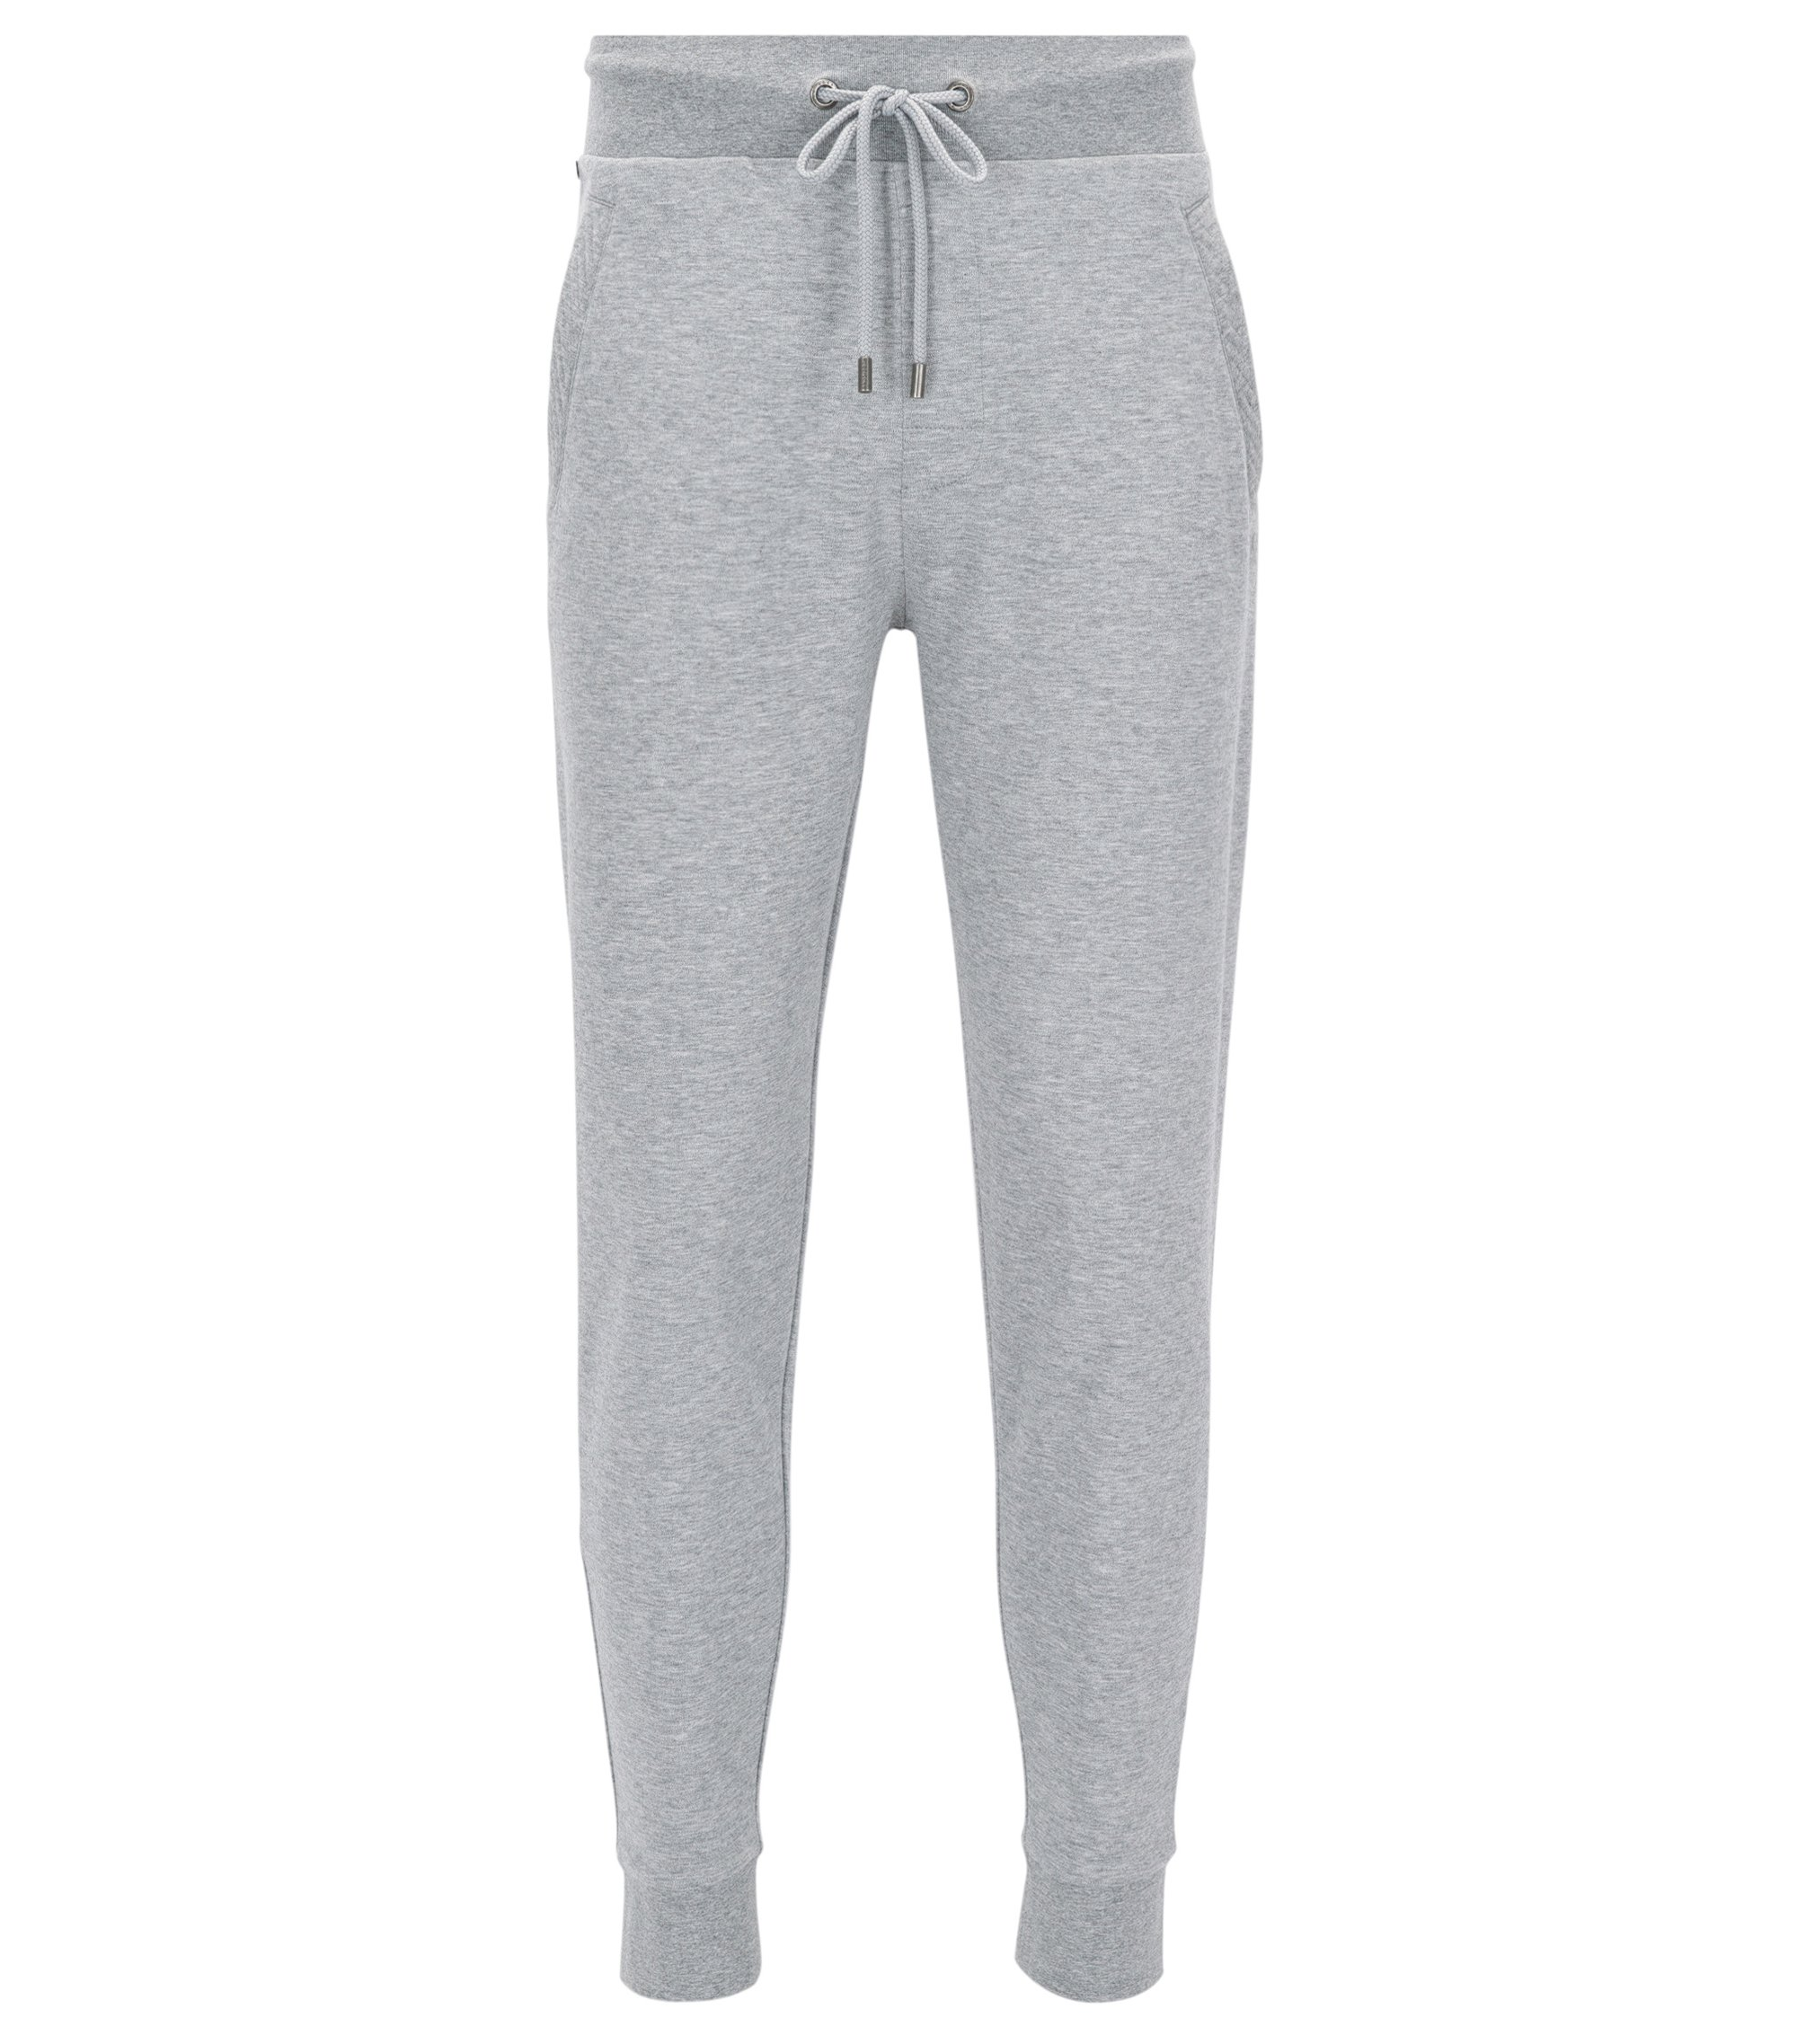 Drawstring jogging trousers in pure cotton, Grey